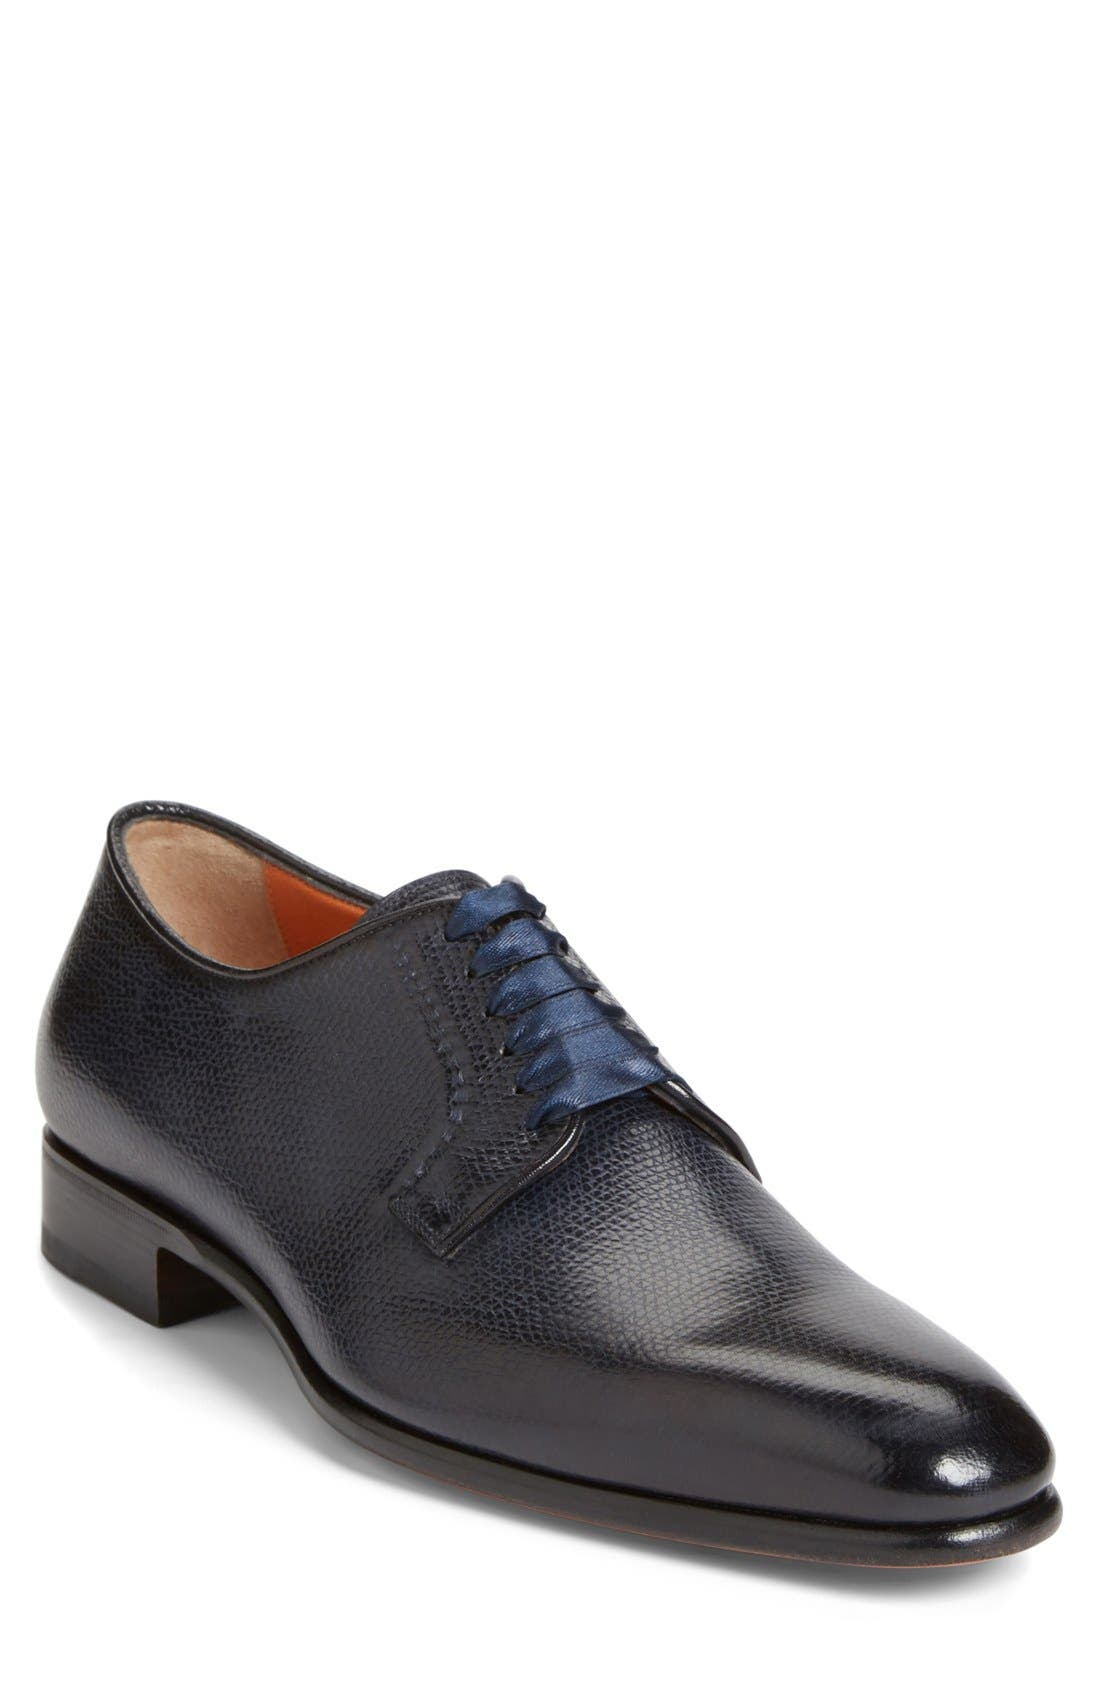 Santoni 'Chelsey' Plain Toe Oxford (Men)